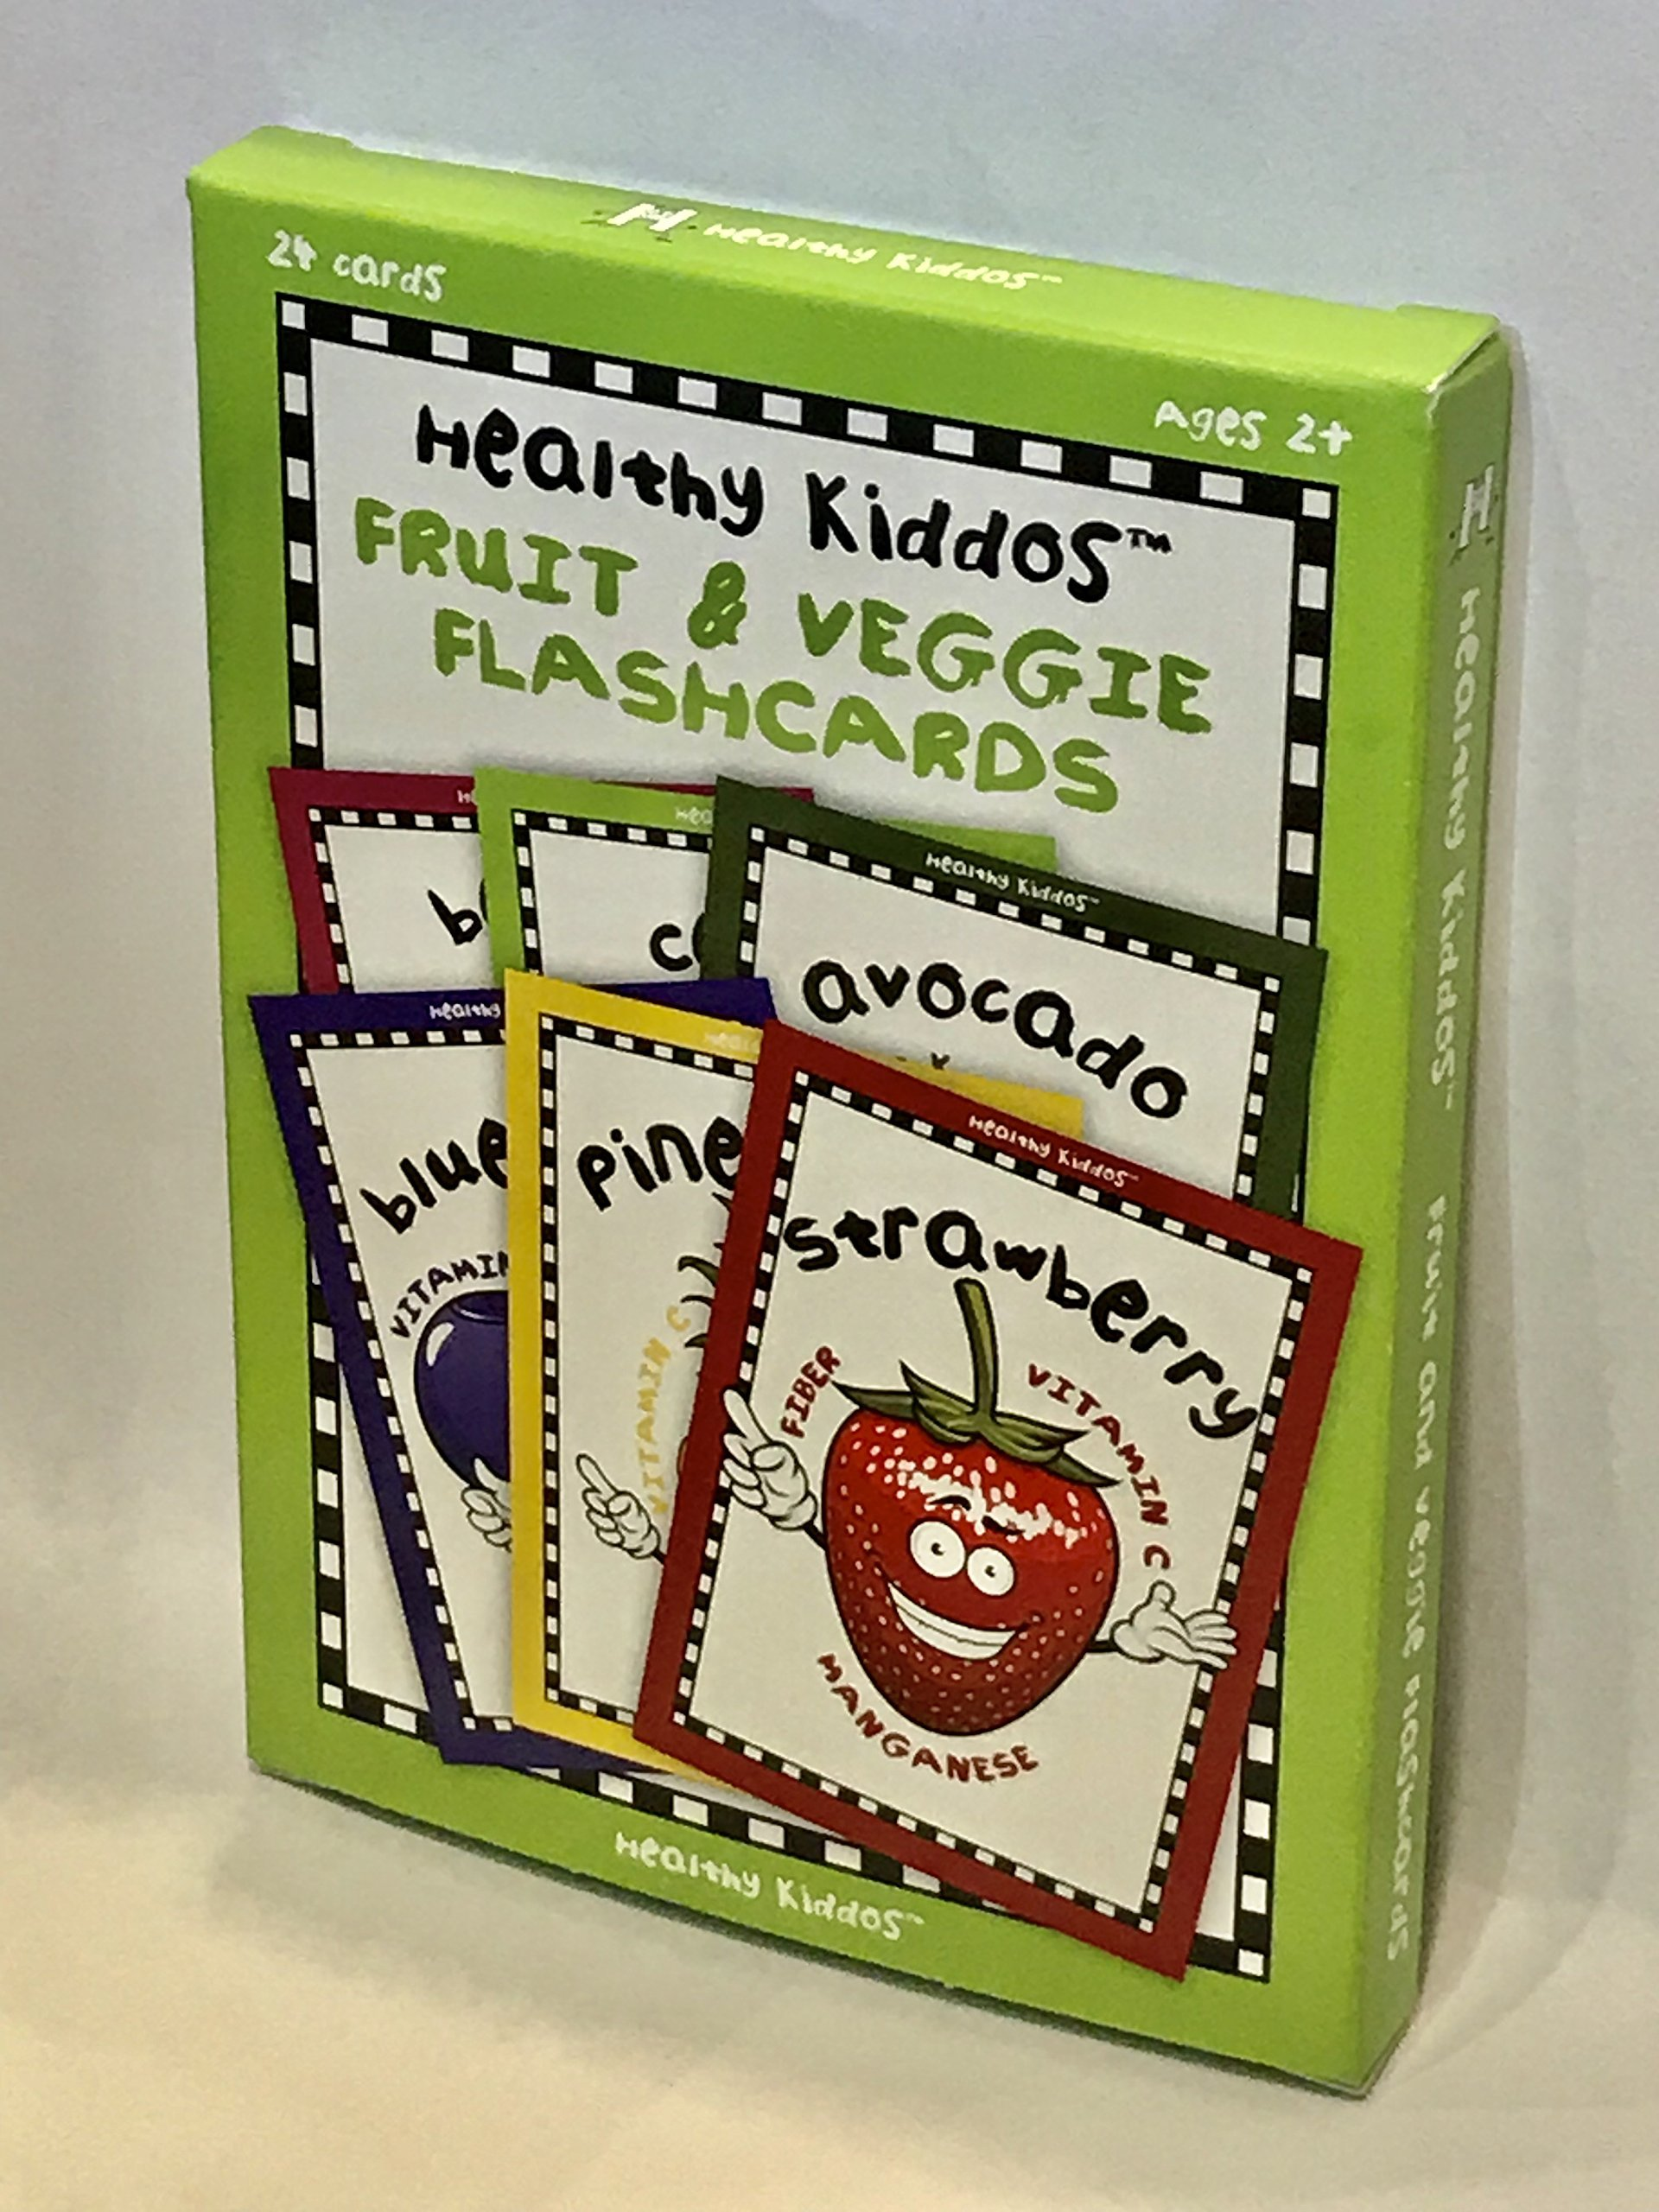 Healthy Kiddos Educational Fruit and Vegetable Flash Cards Teach Children Nutritional Benefits of Fruits and Veggies - 24 ct